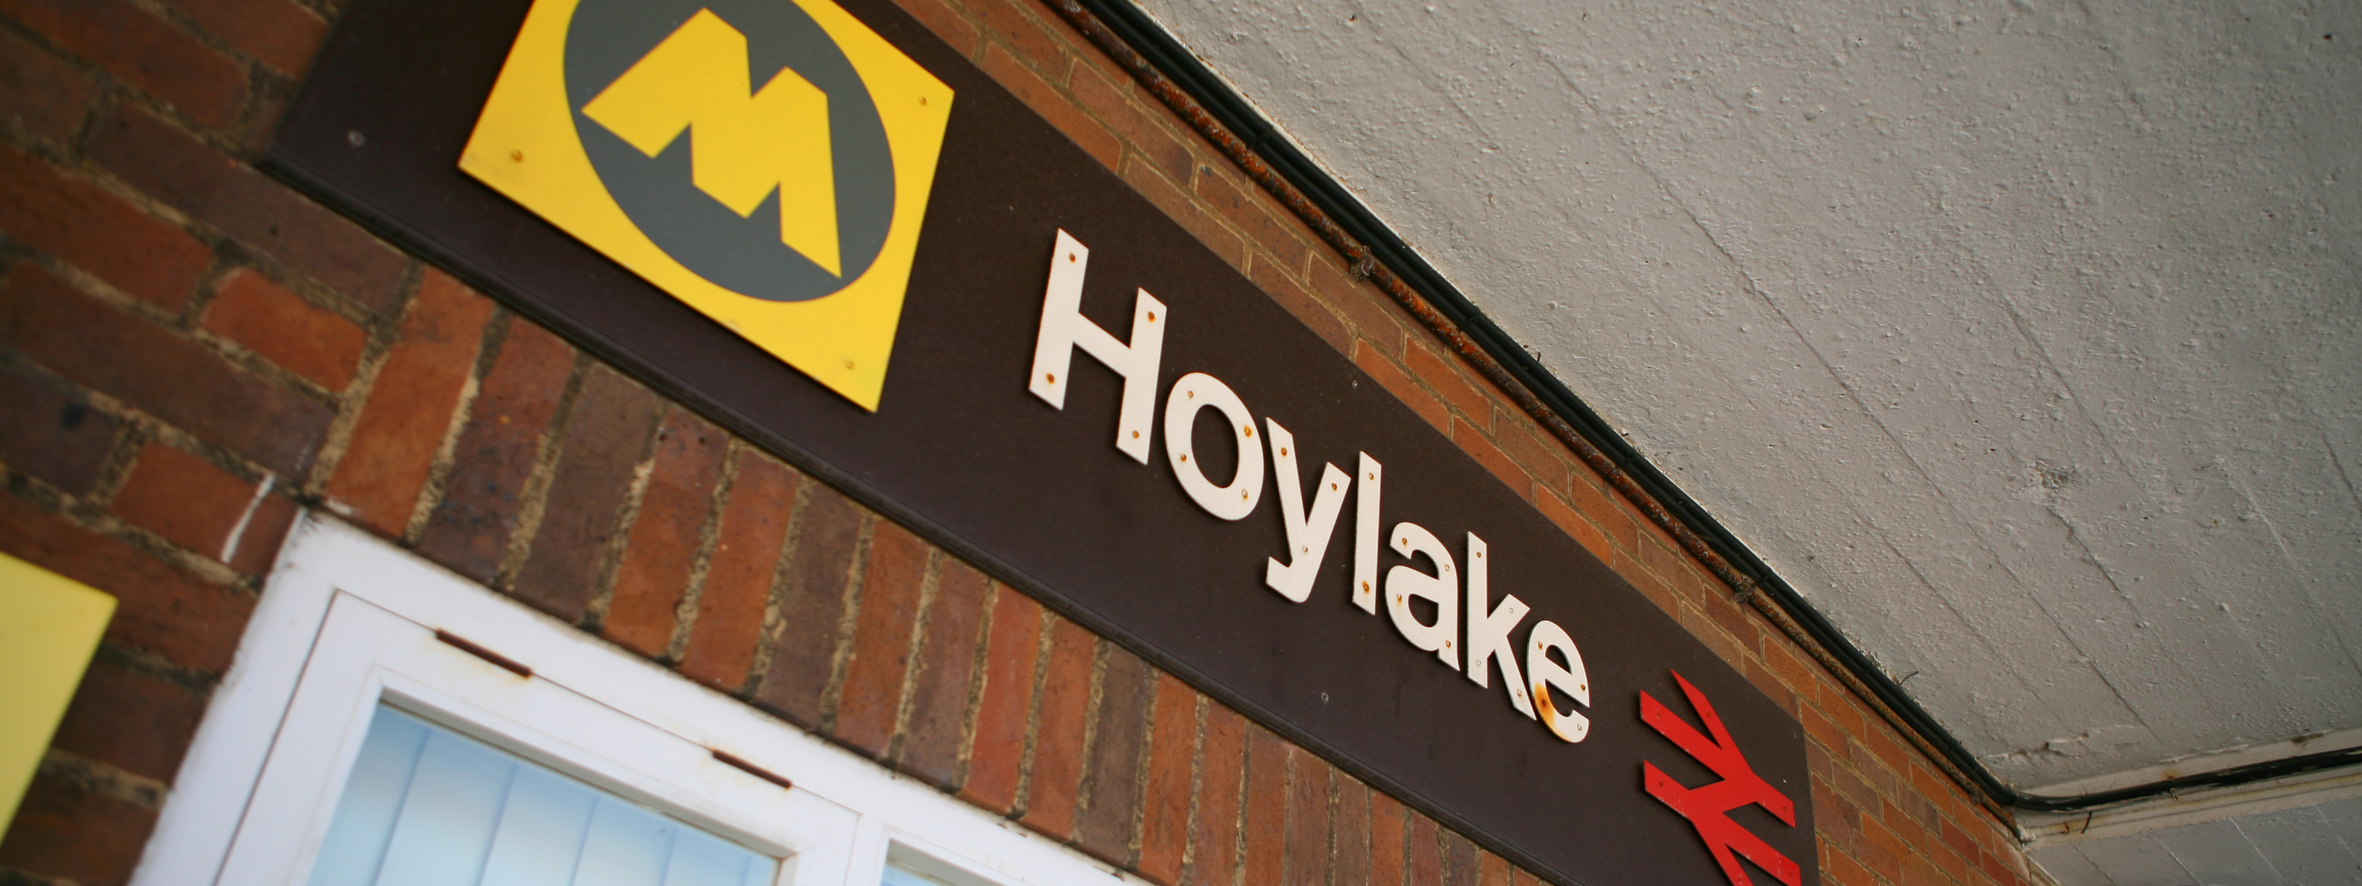 Section three: Getting around Hoylake